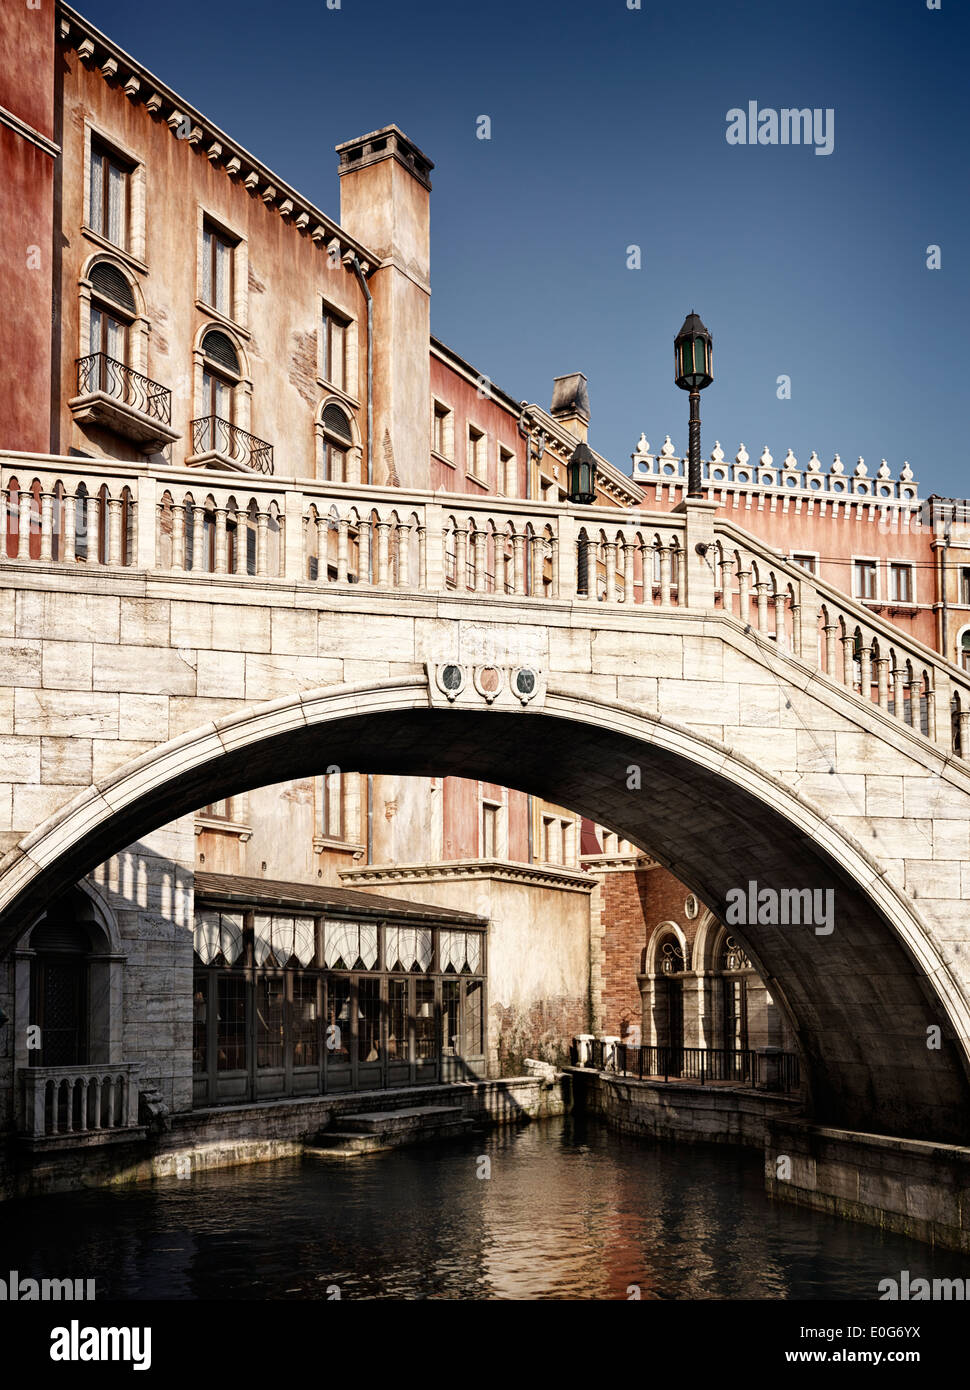 Bridge over a canal with Venetian architecture buildings - Stock Image